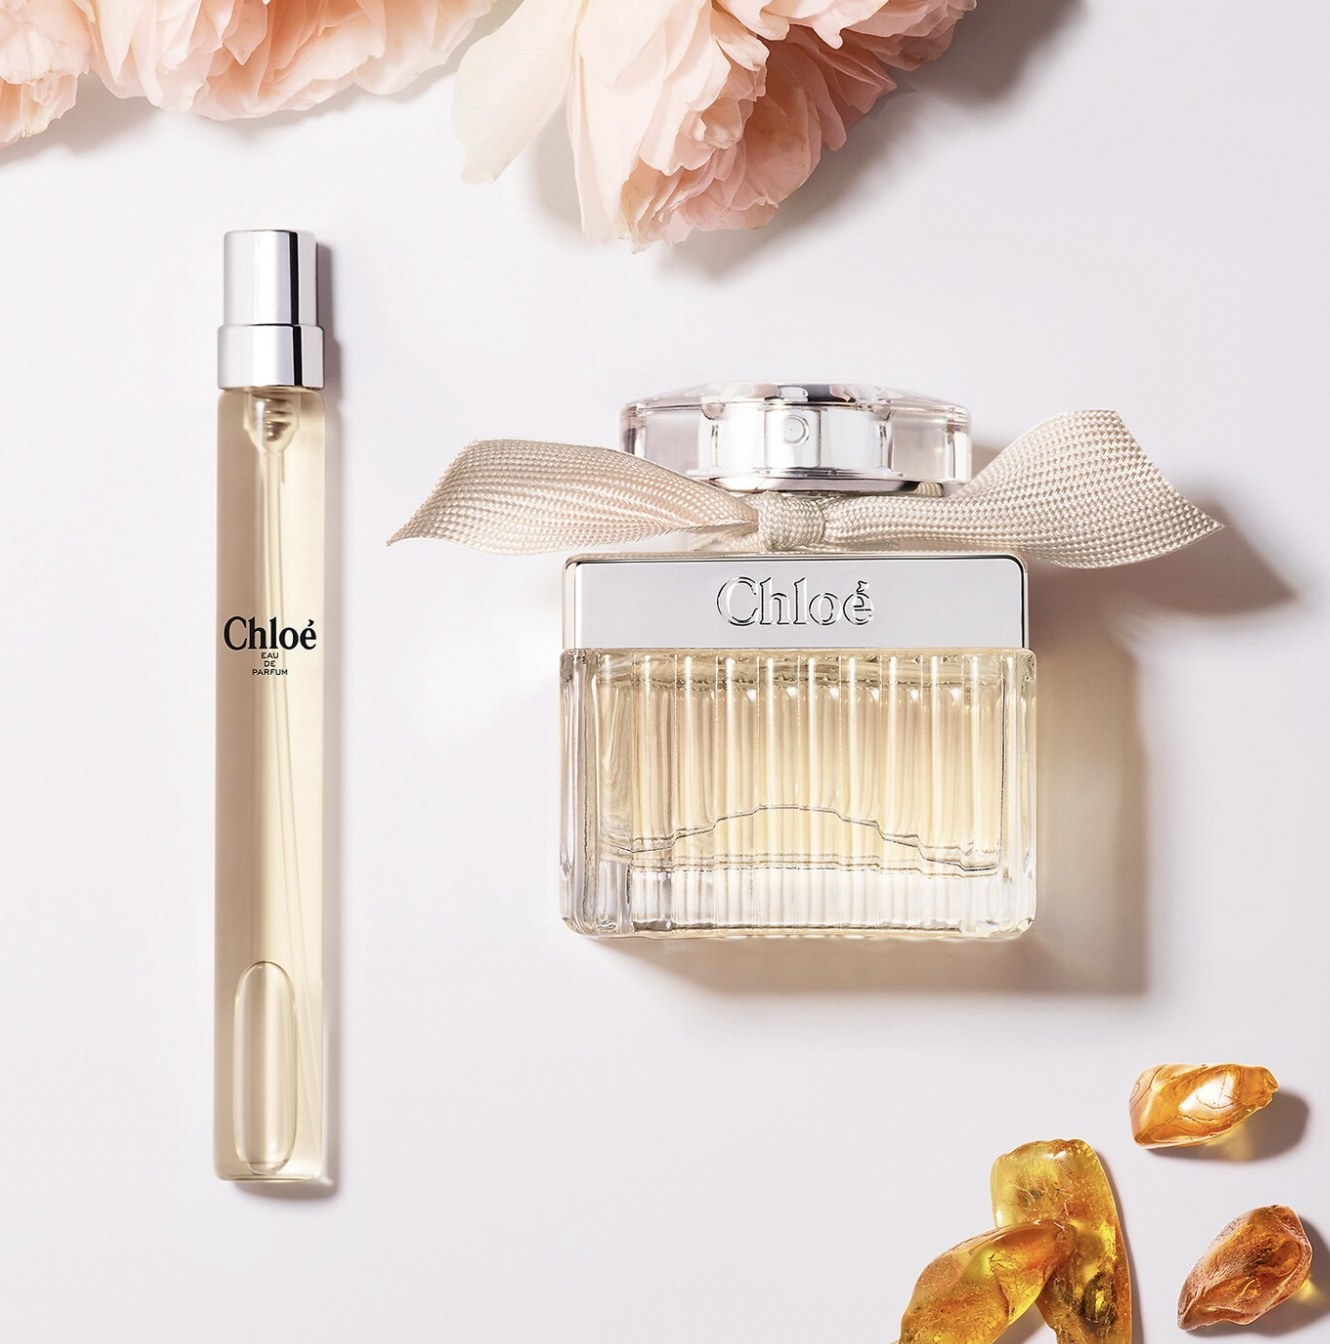 A powdery floral perfume in a rollerball and perfume spray